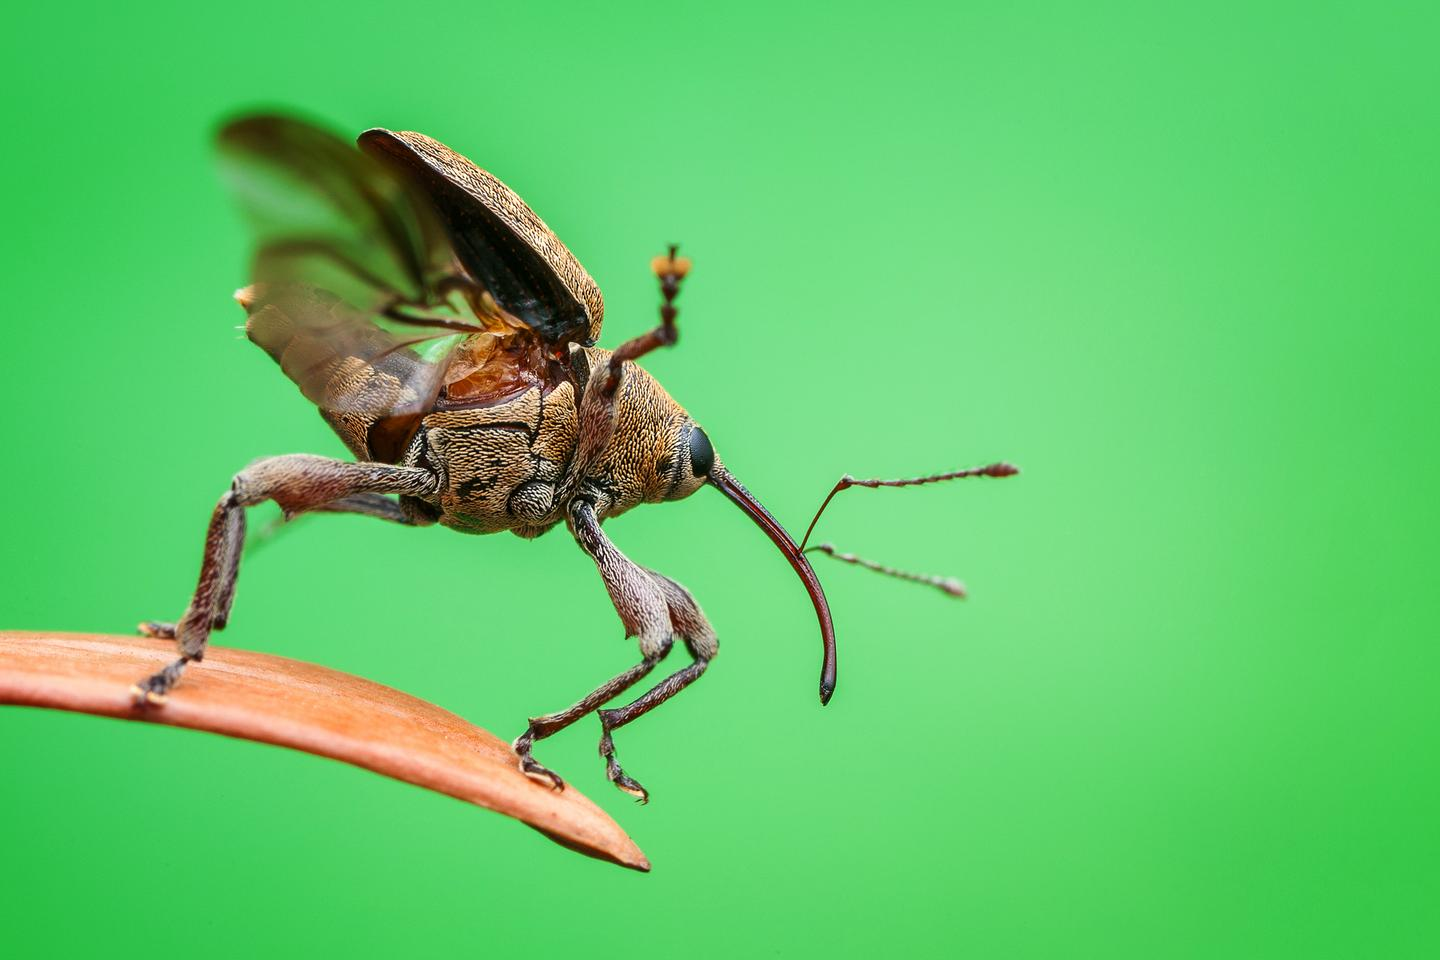 An acorn weevil prepares for takeoff